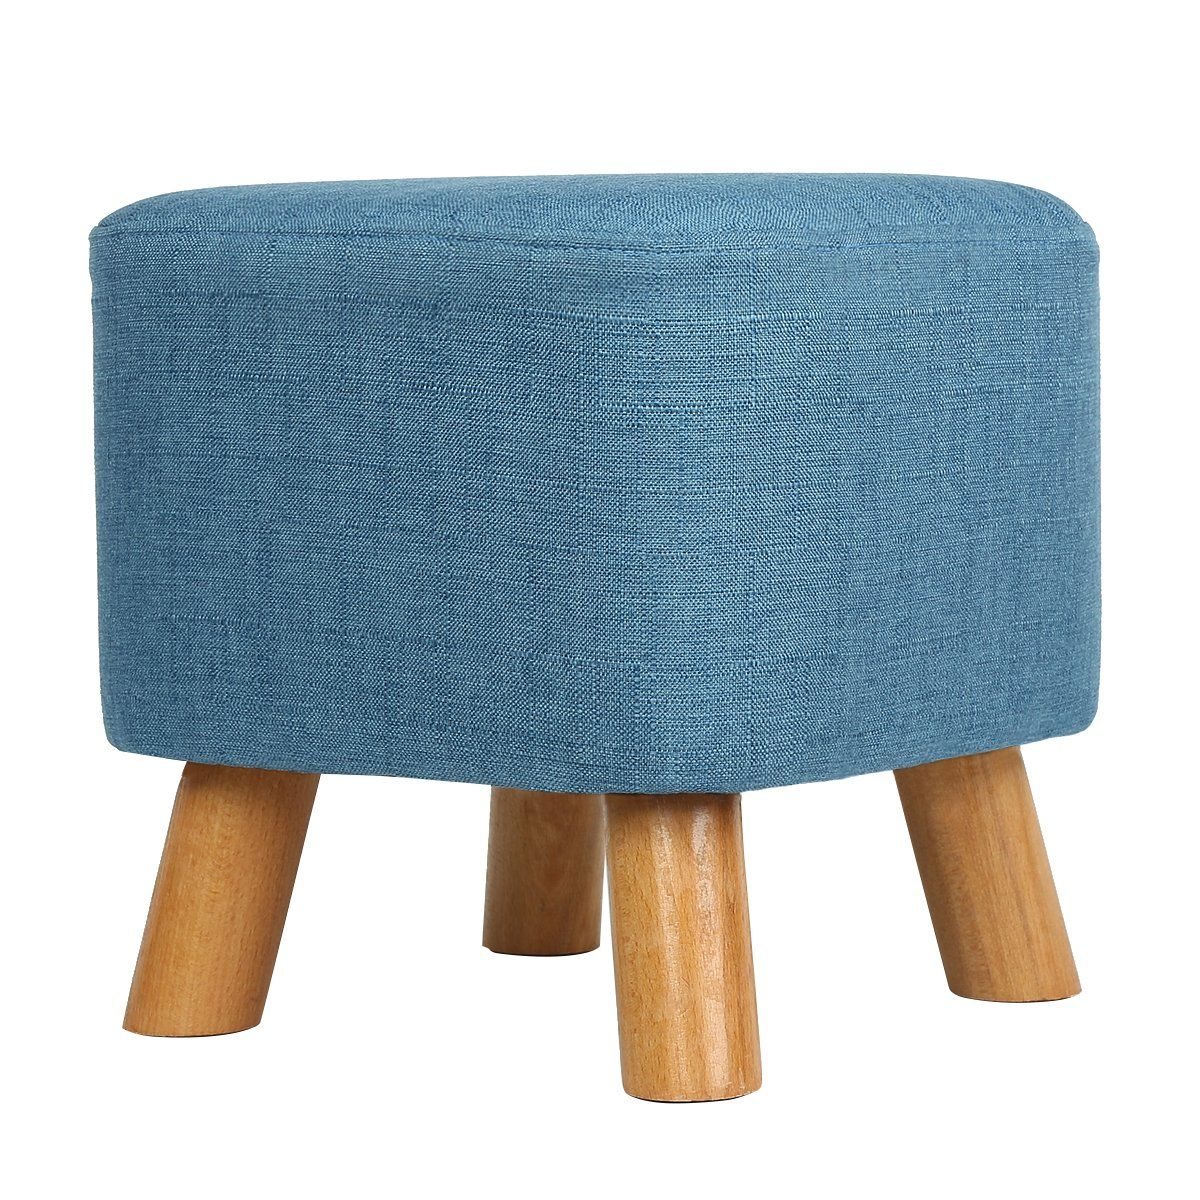 Eshow Footstools With Storage Ottoman Storage Stool Foot Rest With